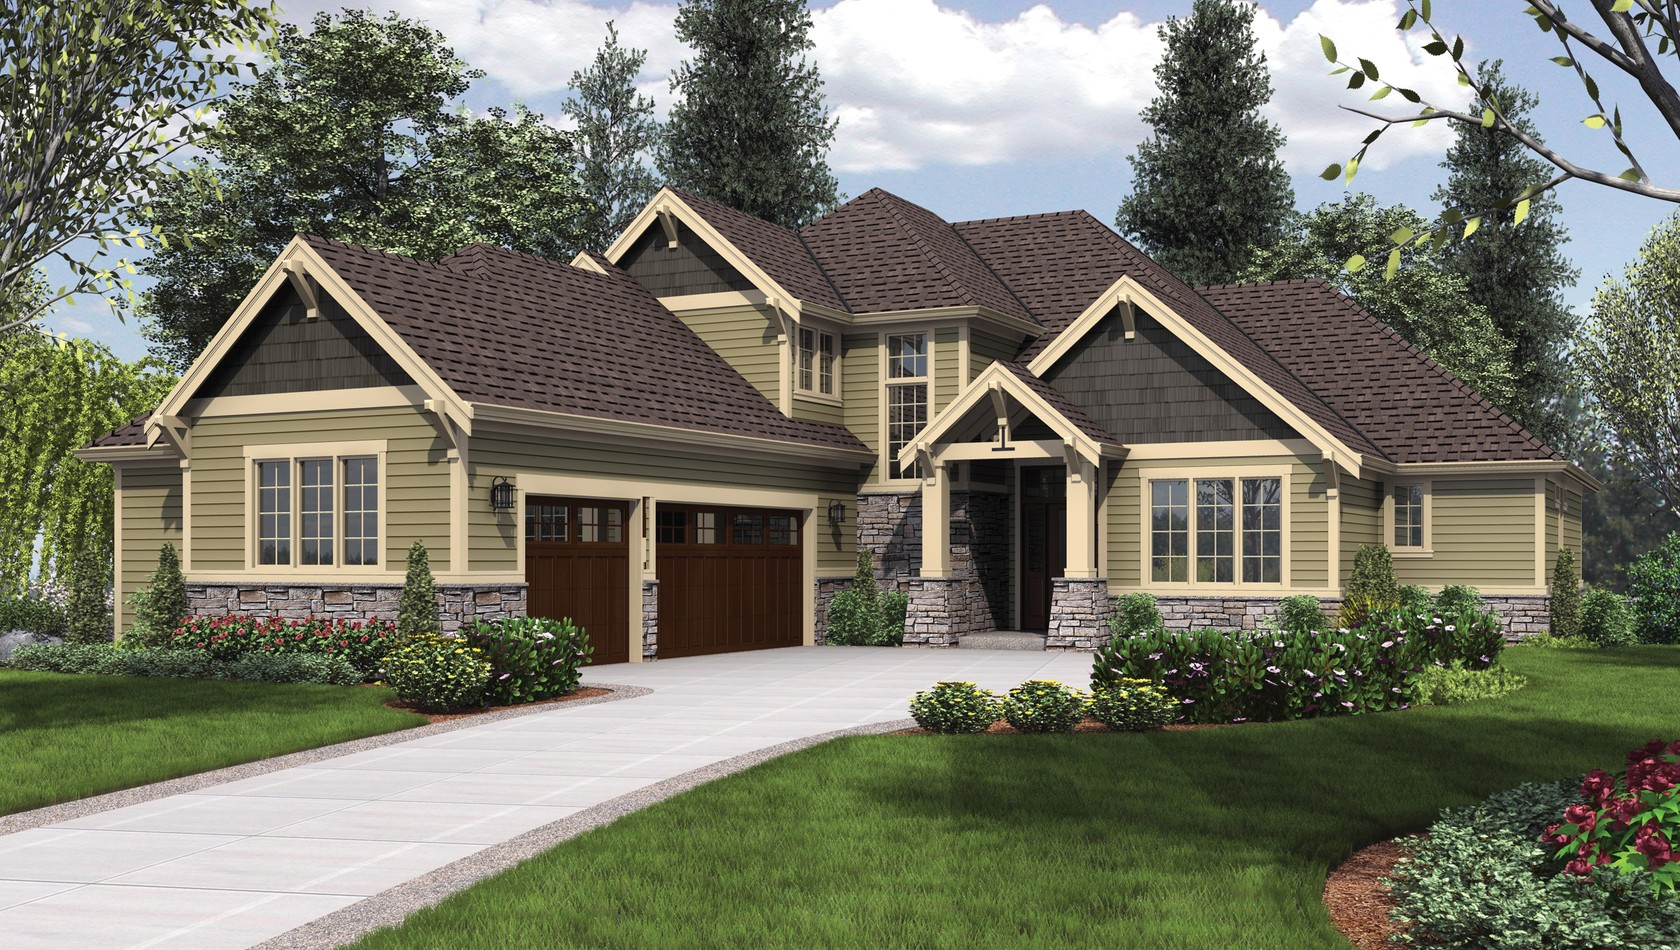 Main image for house plan 2396: The Vidabelo